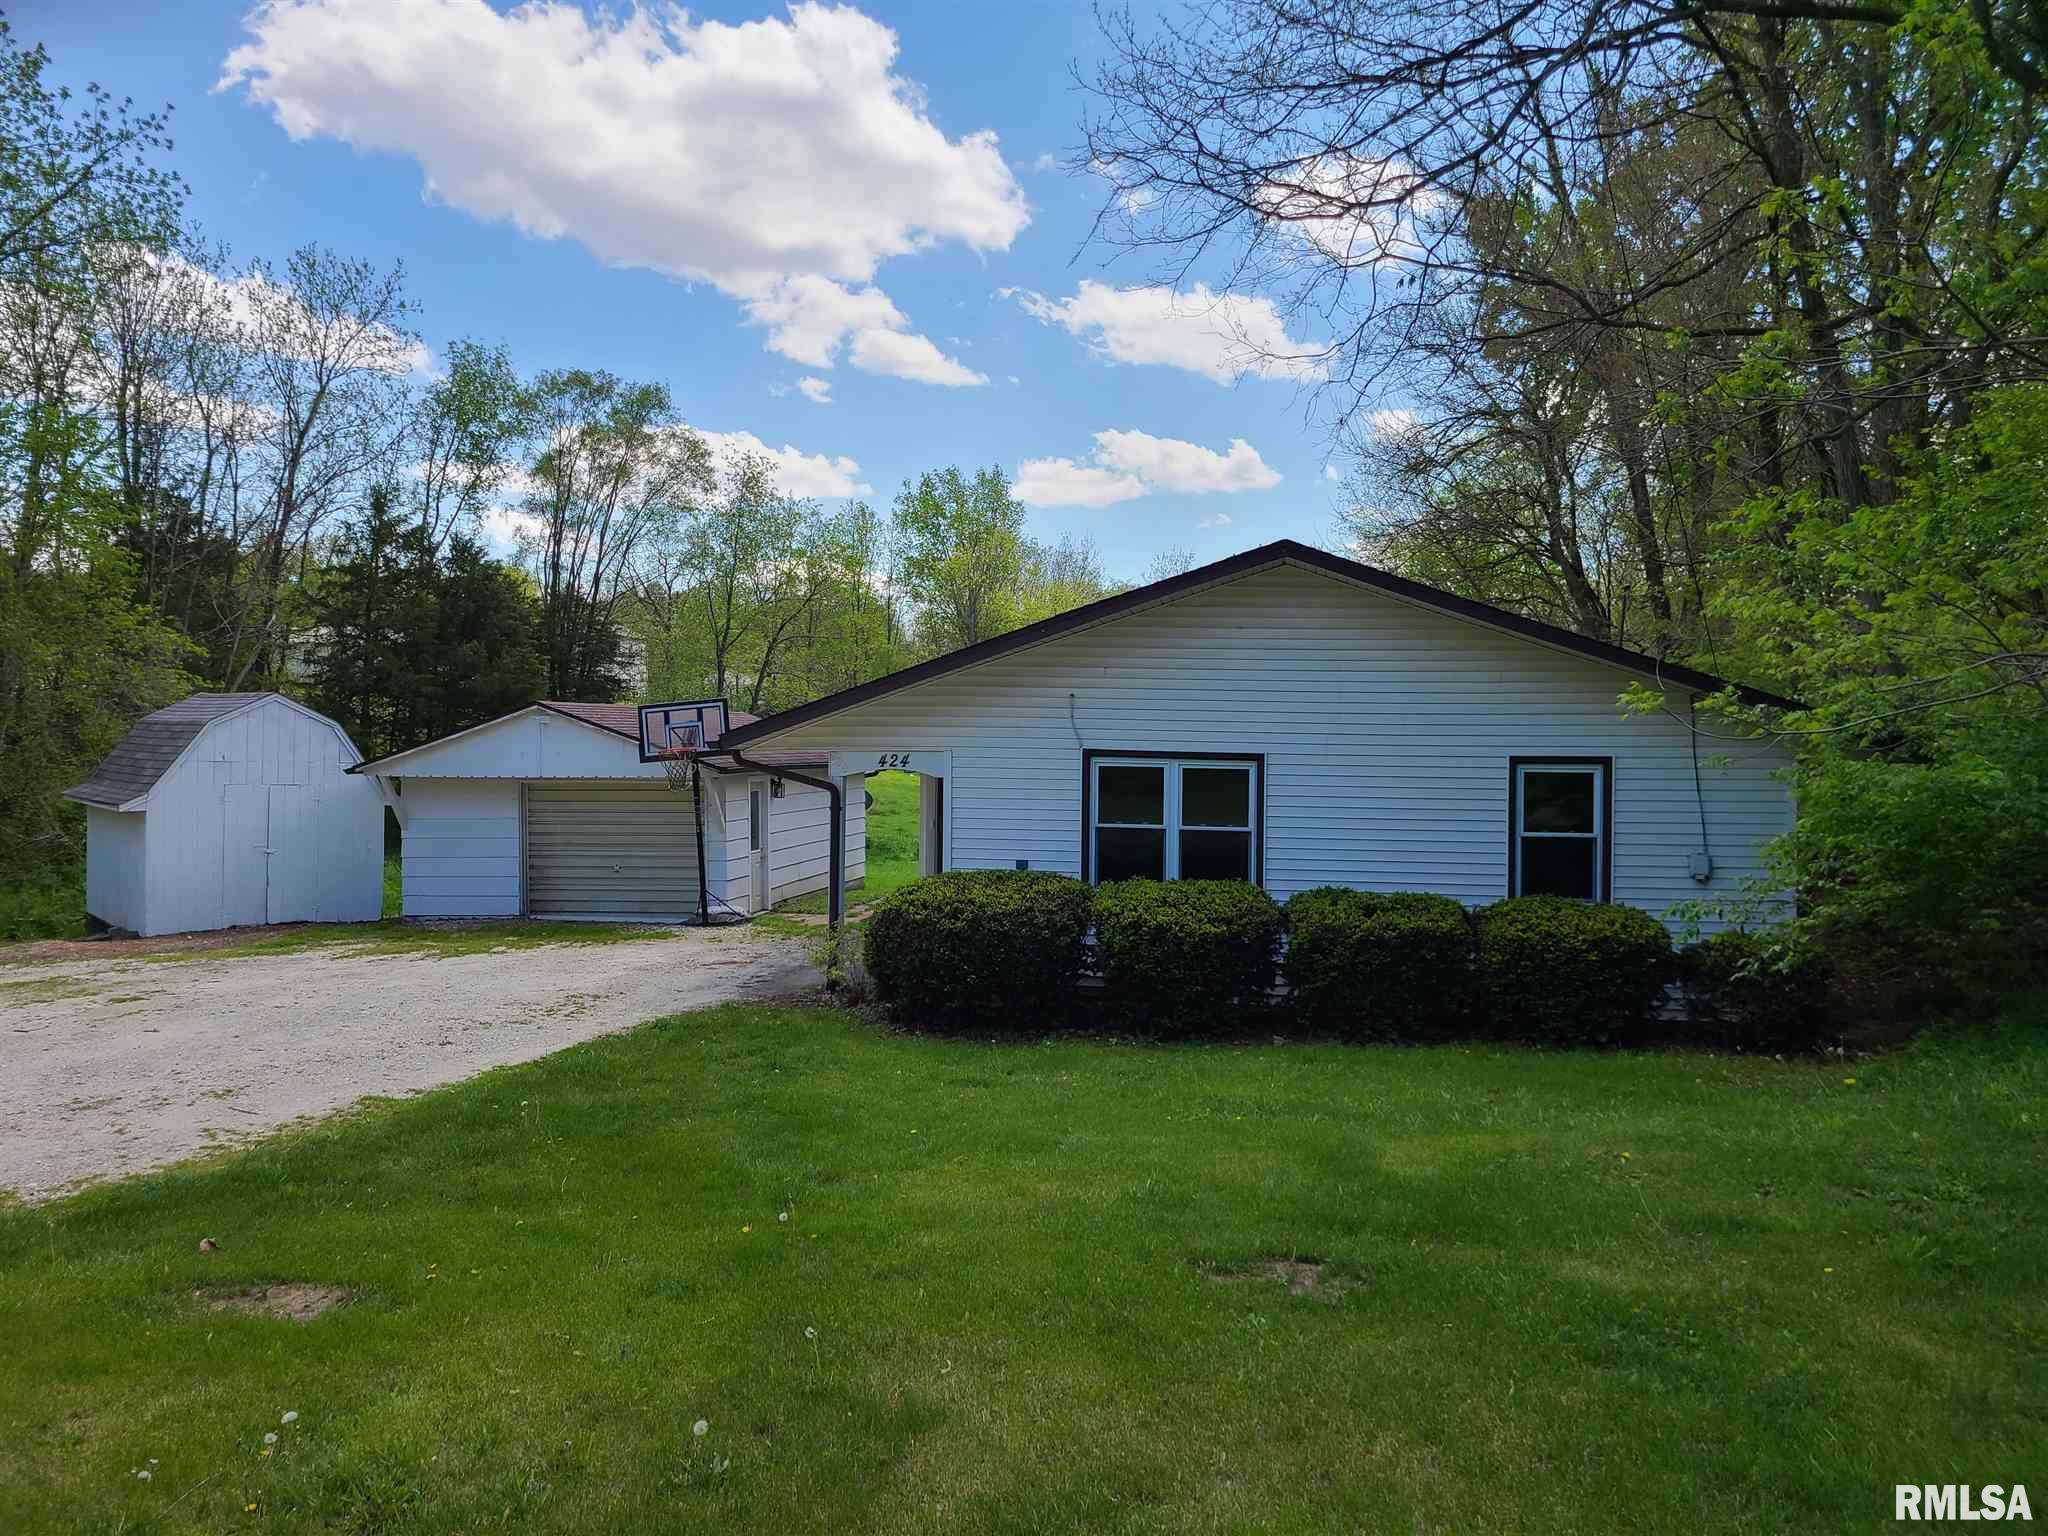 424 W MAIN Property Photo - Knoxville, IL real estate listing